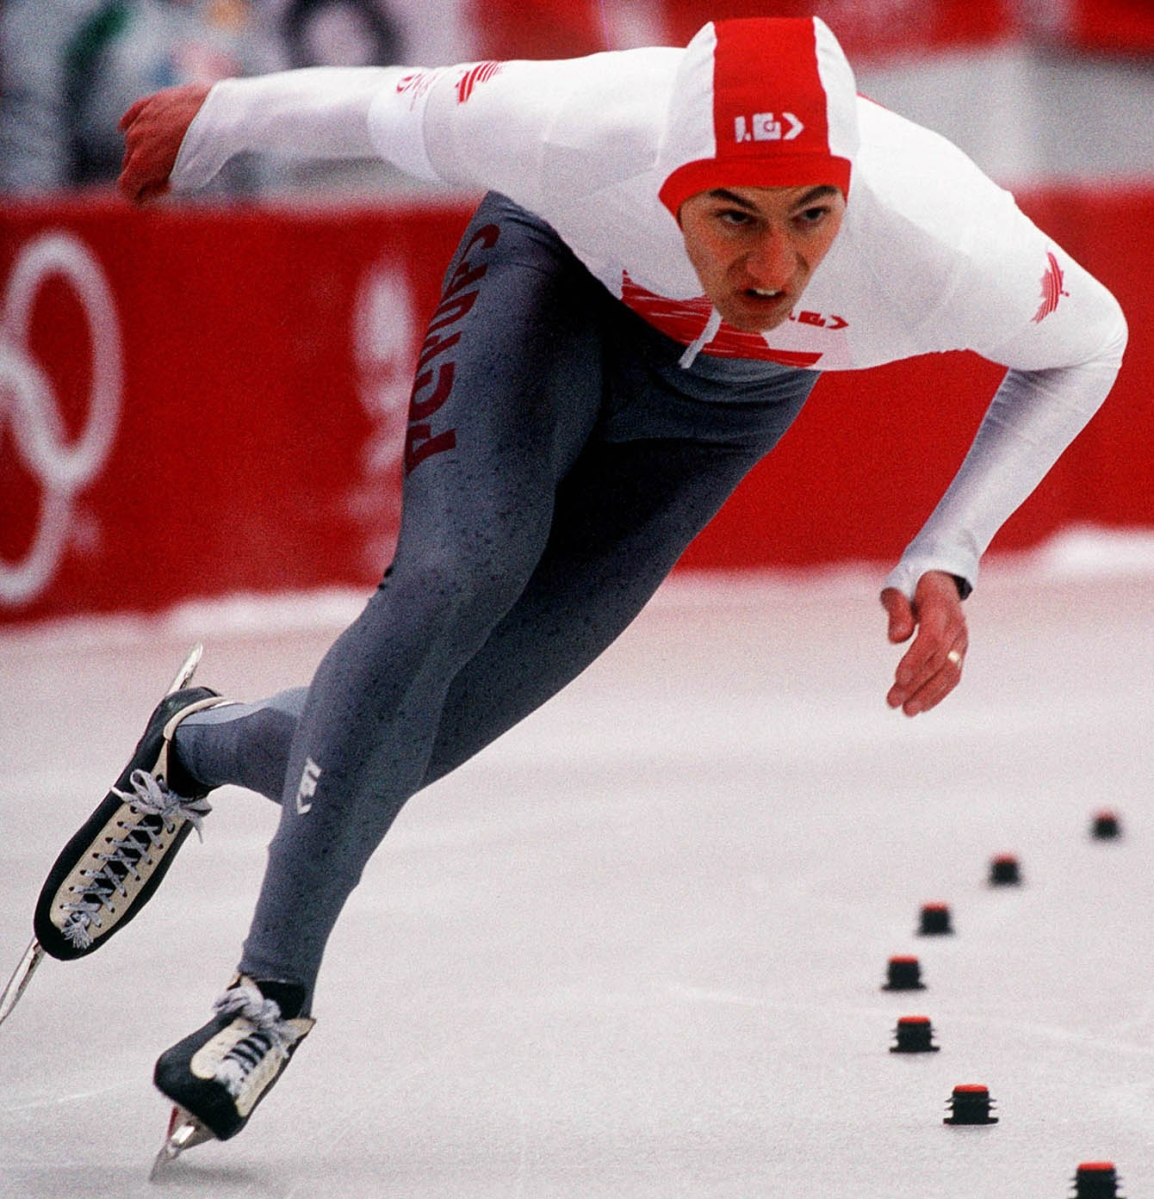 Robert Dubreuil speed skating